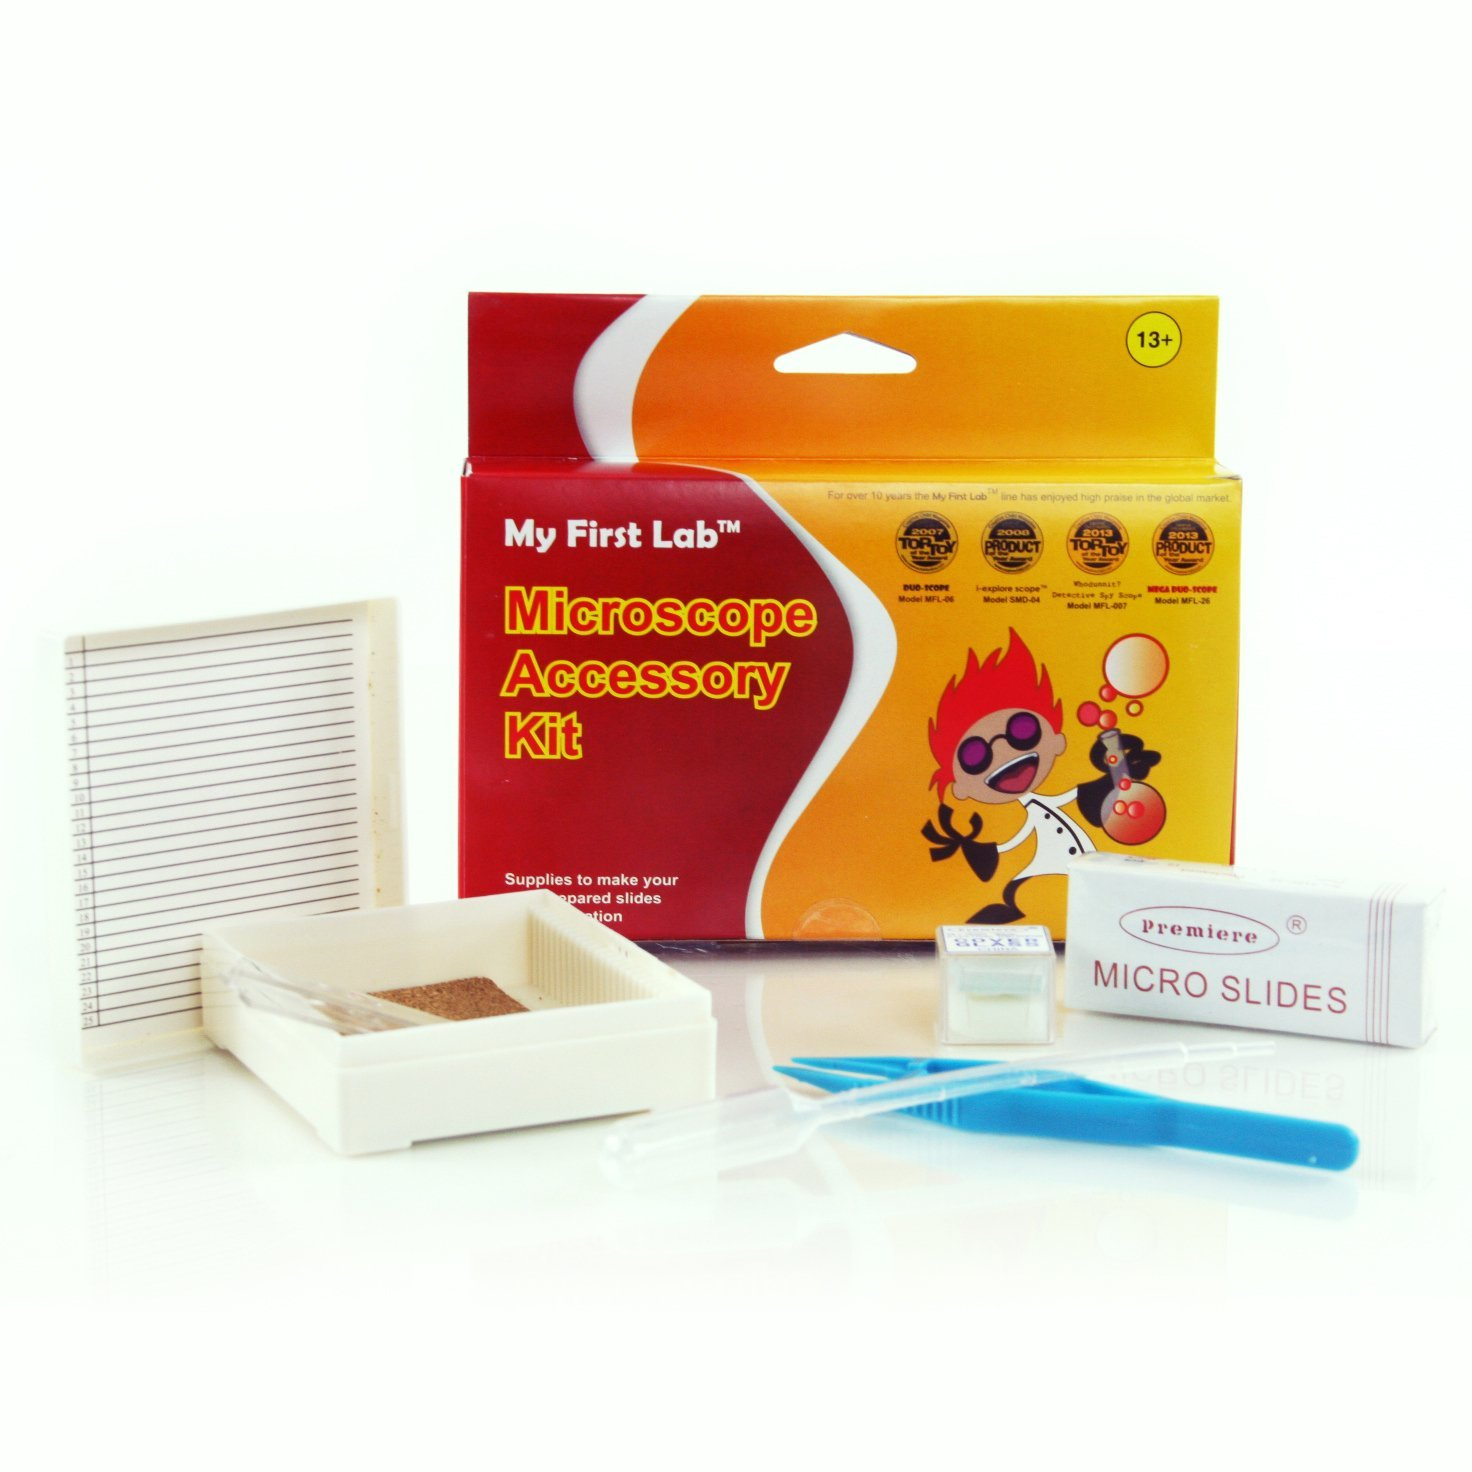 My First Lab Microscope Accessory Kit